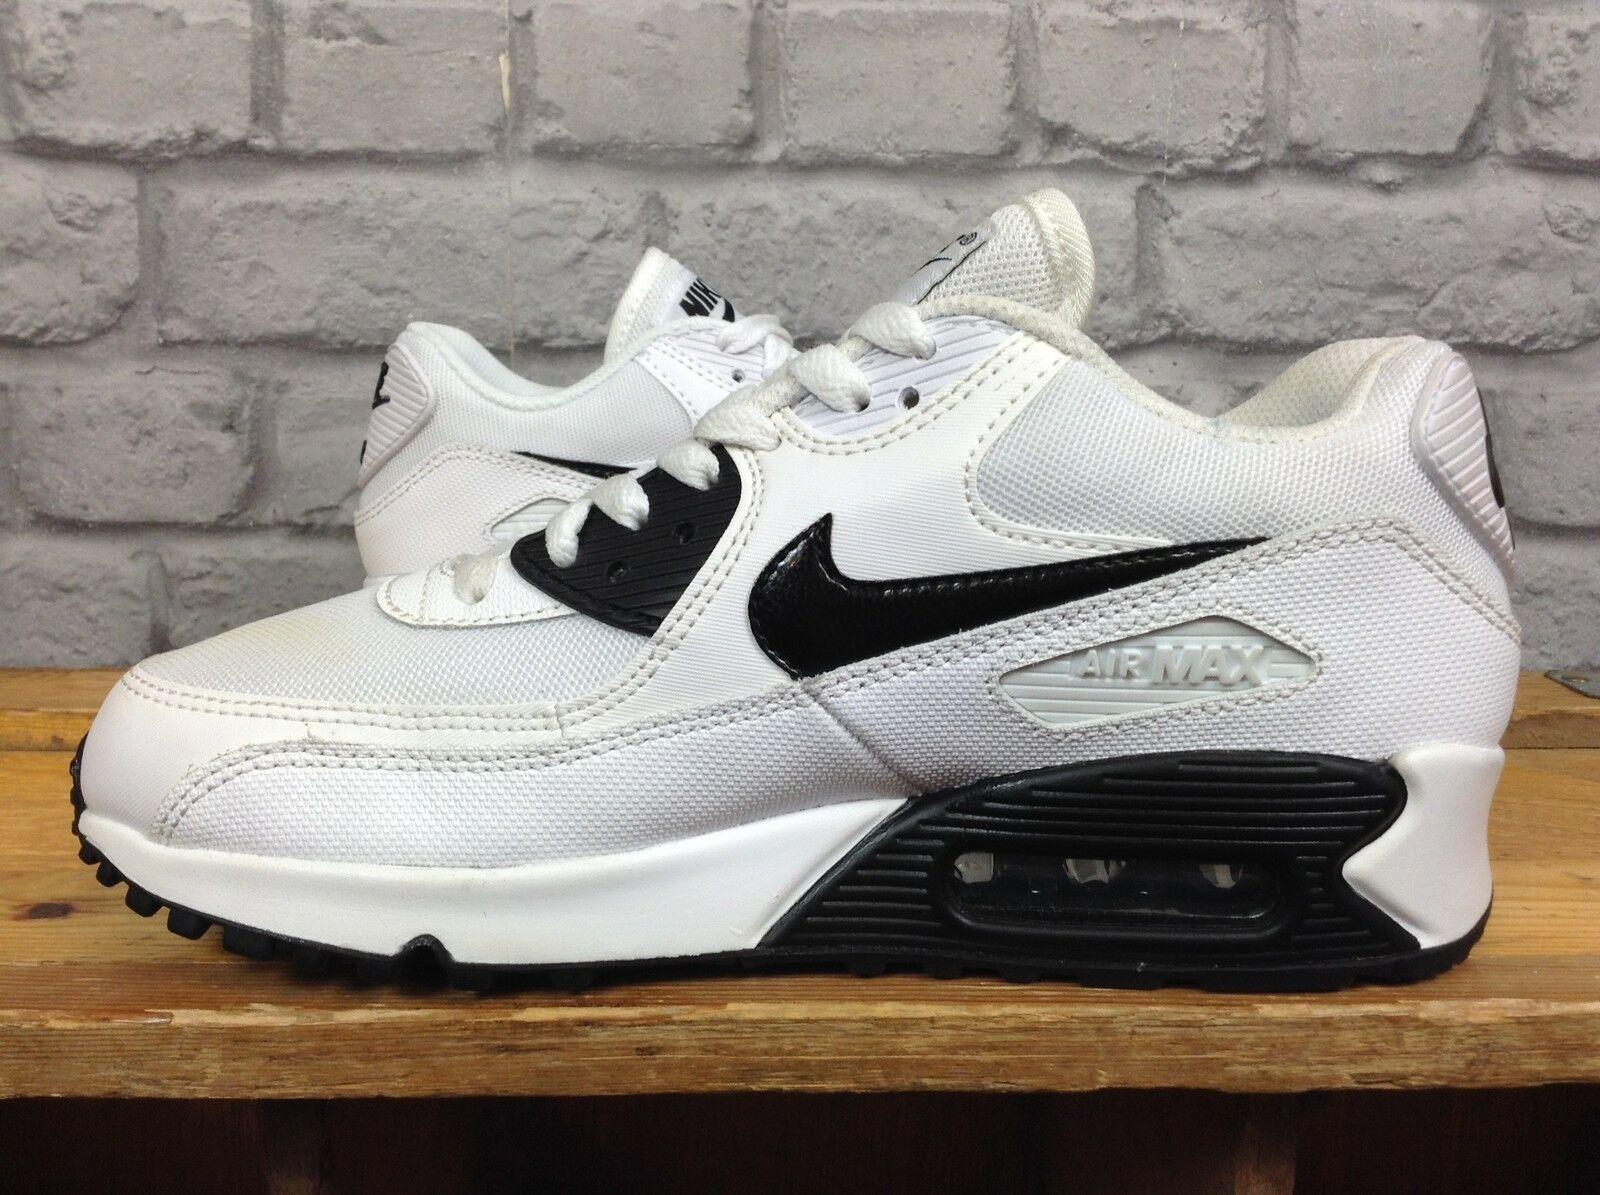 NIKE LADIES5 EU TRAINERS 38.5 blanc noir  ESSENTIAL TRAINERS EU  100 4f0330